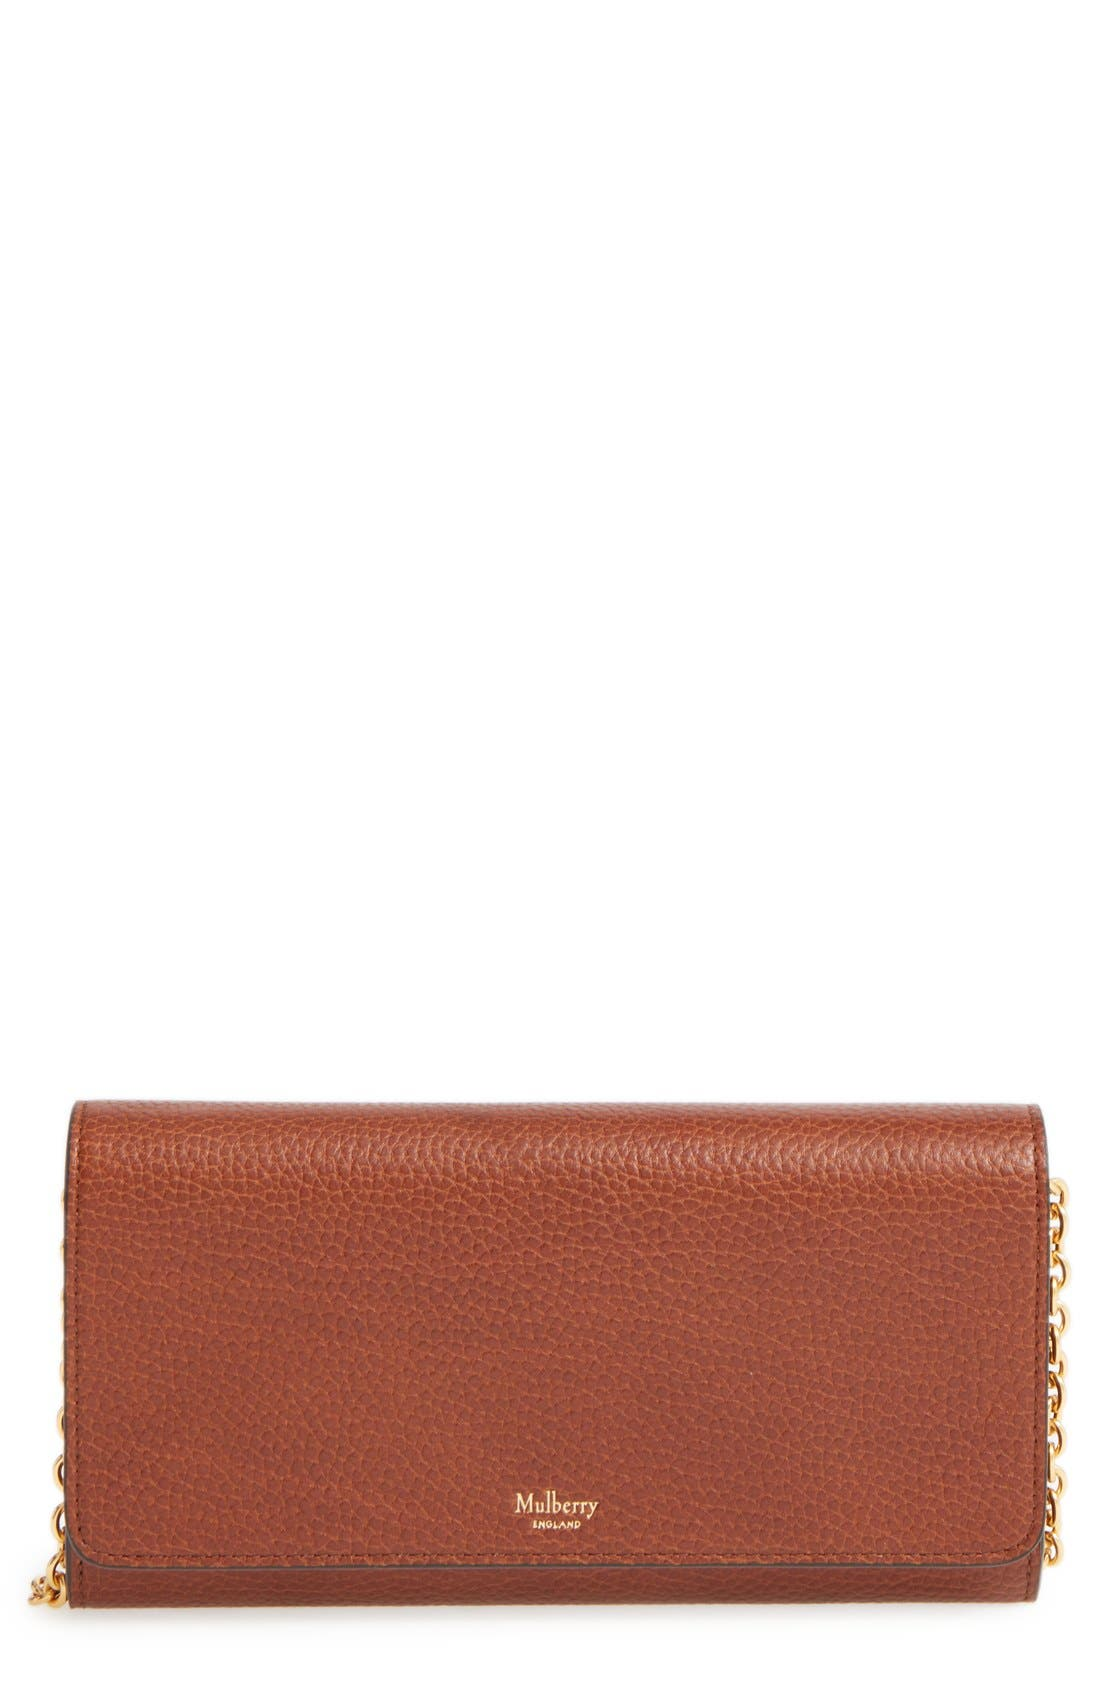 Alternate Image 1 Selected - Mulberry 'Continental - Classic' Convertible Leather Clutch